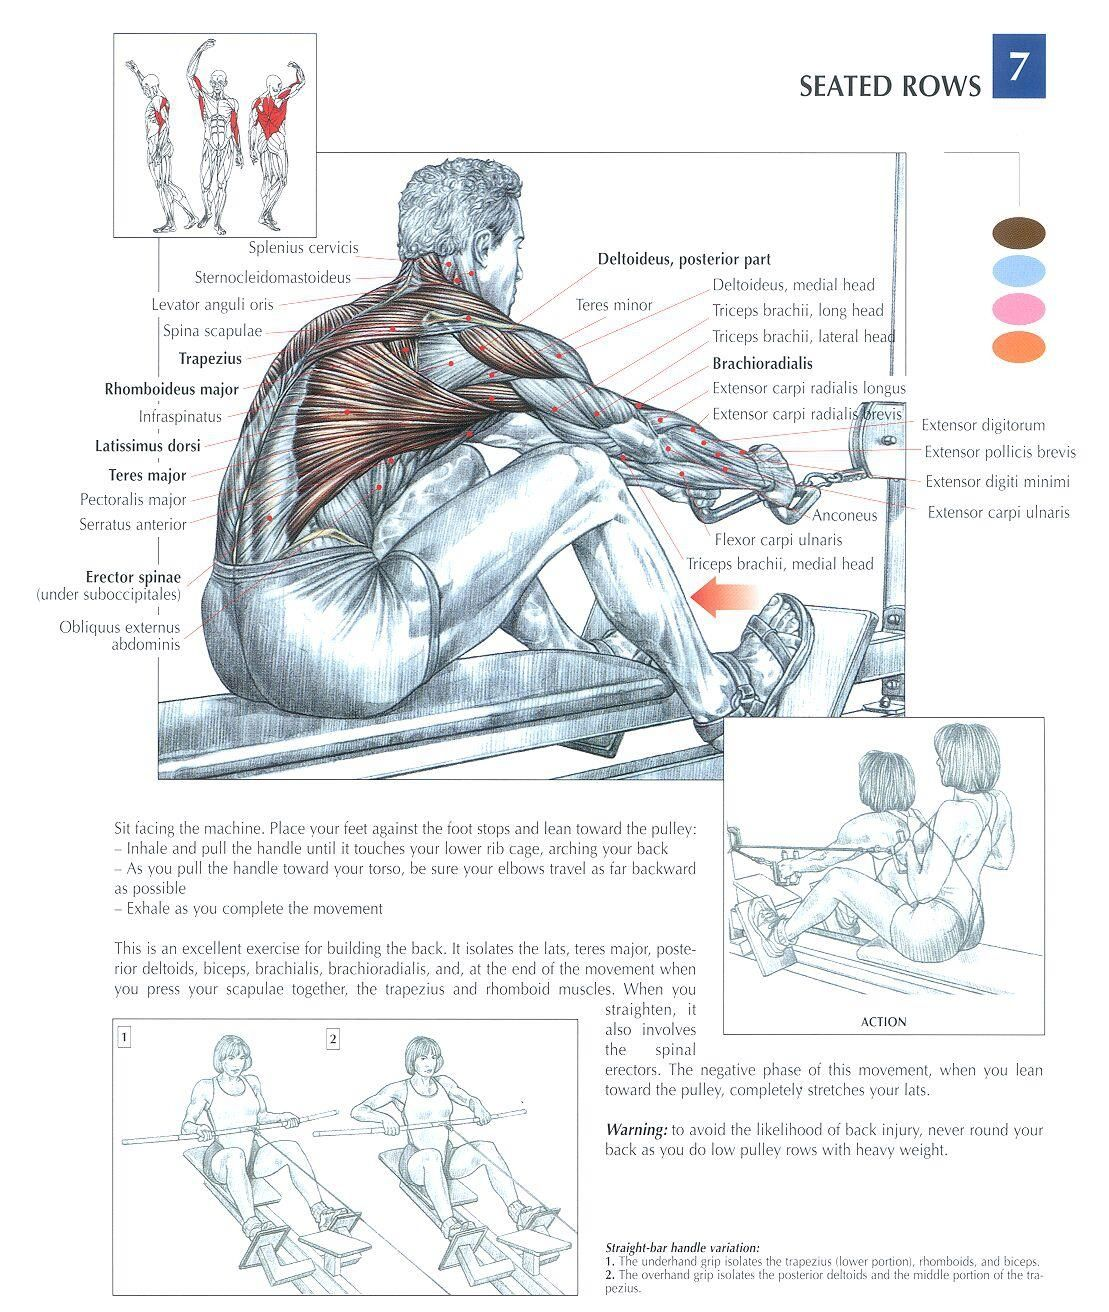 Seated Rows  Exercice  Pinterest  Community Workout and Facebook